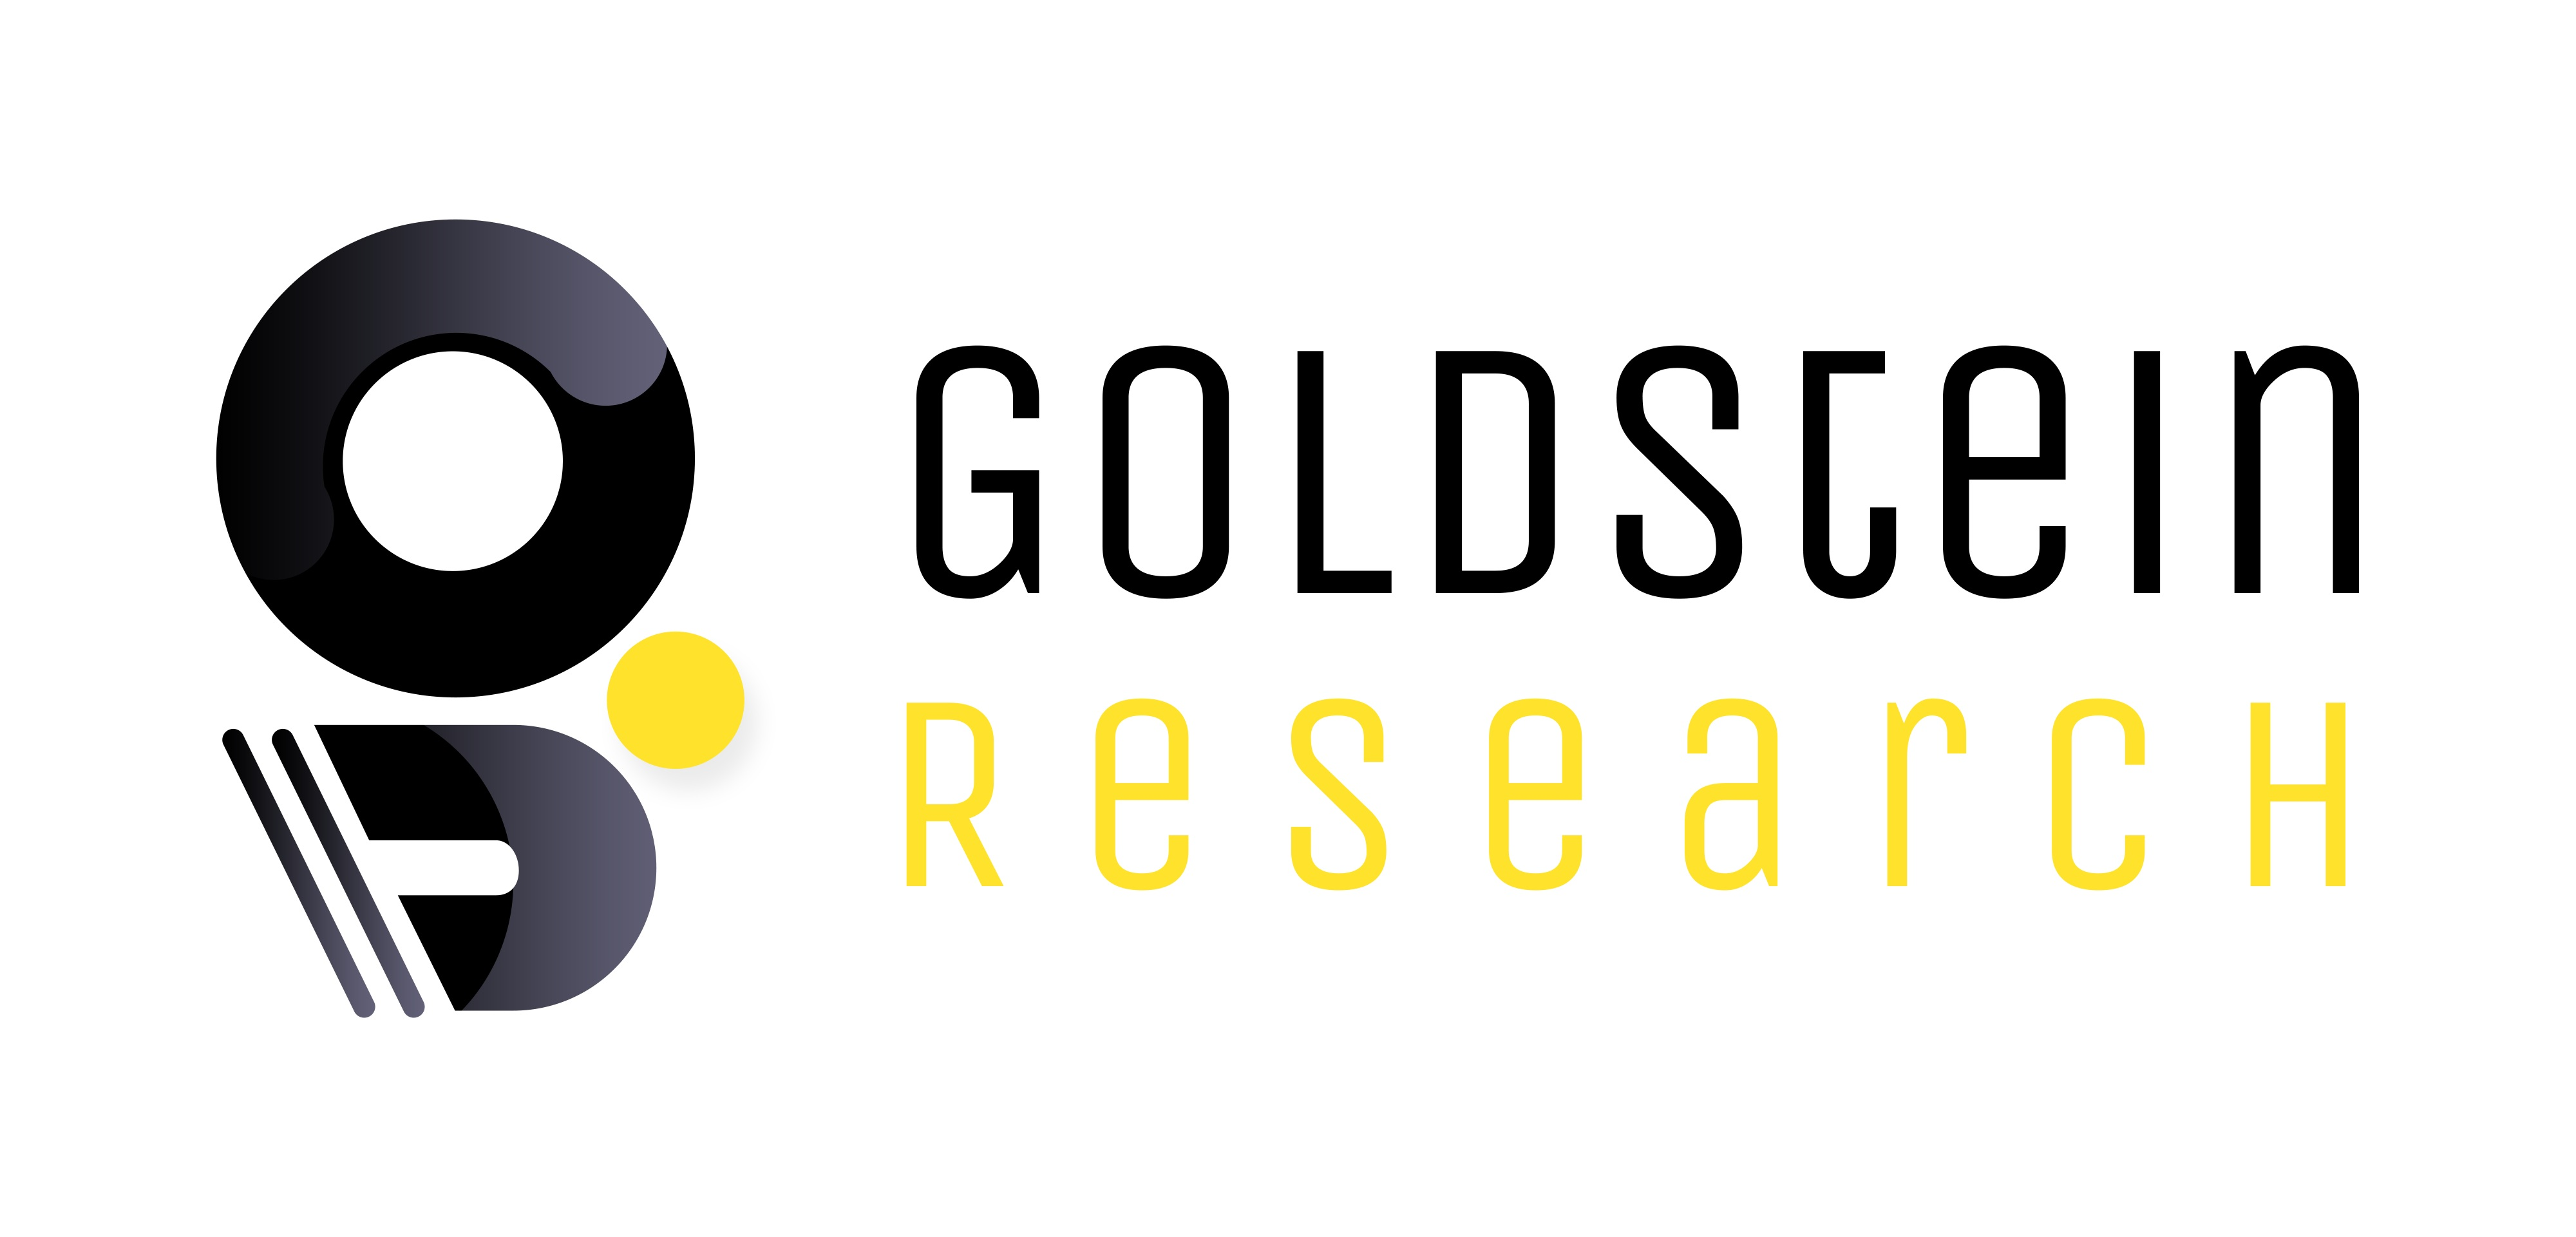 Demand for Material Handling Equipment is Likely to Reach USD 124.5 Billion by 2024- Goldstein Research